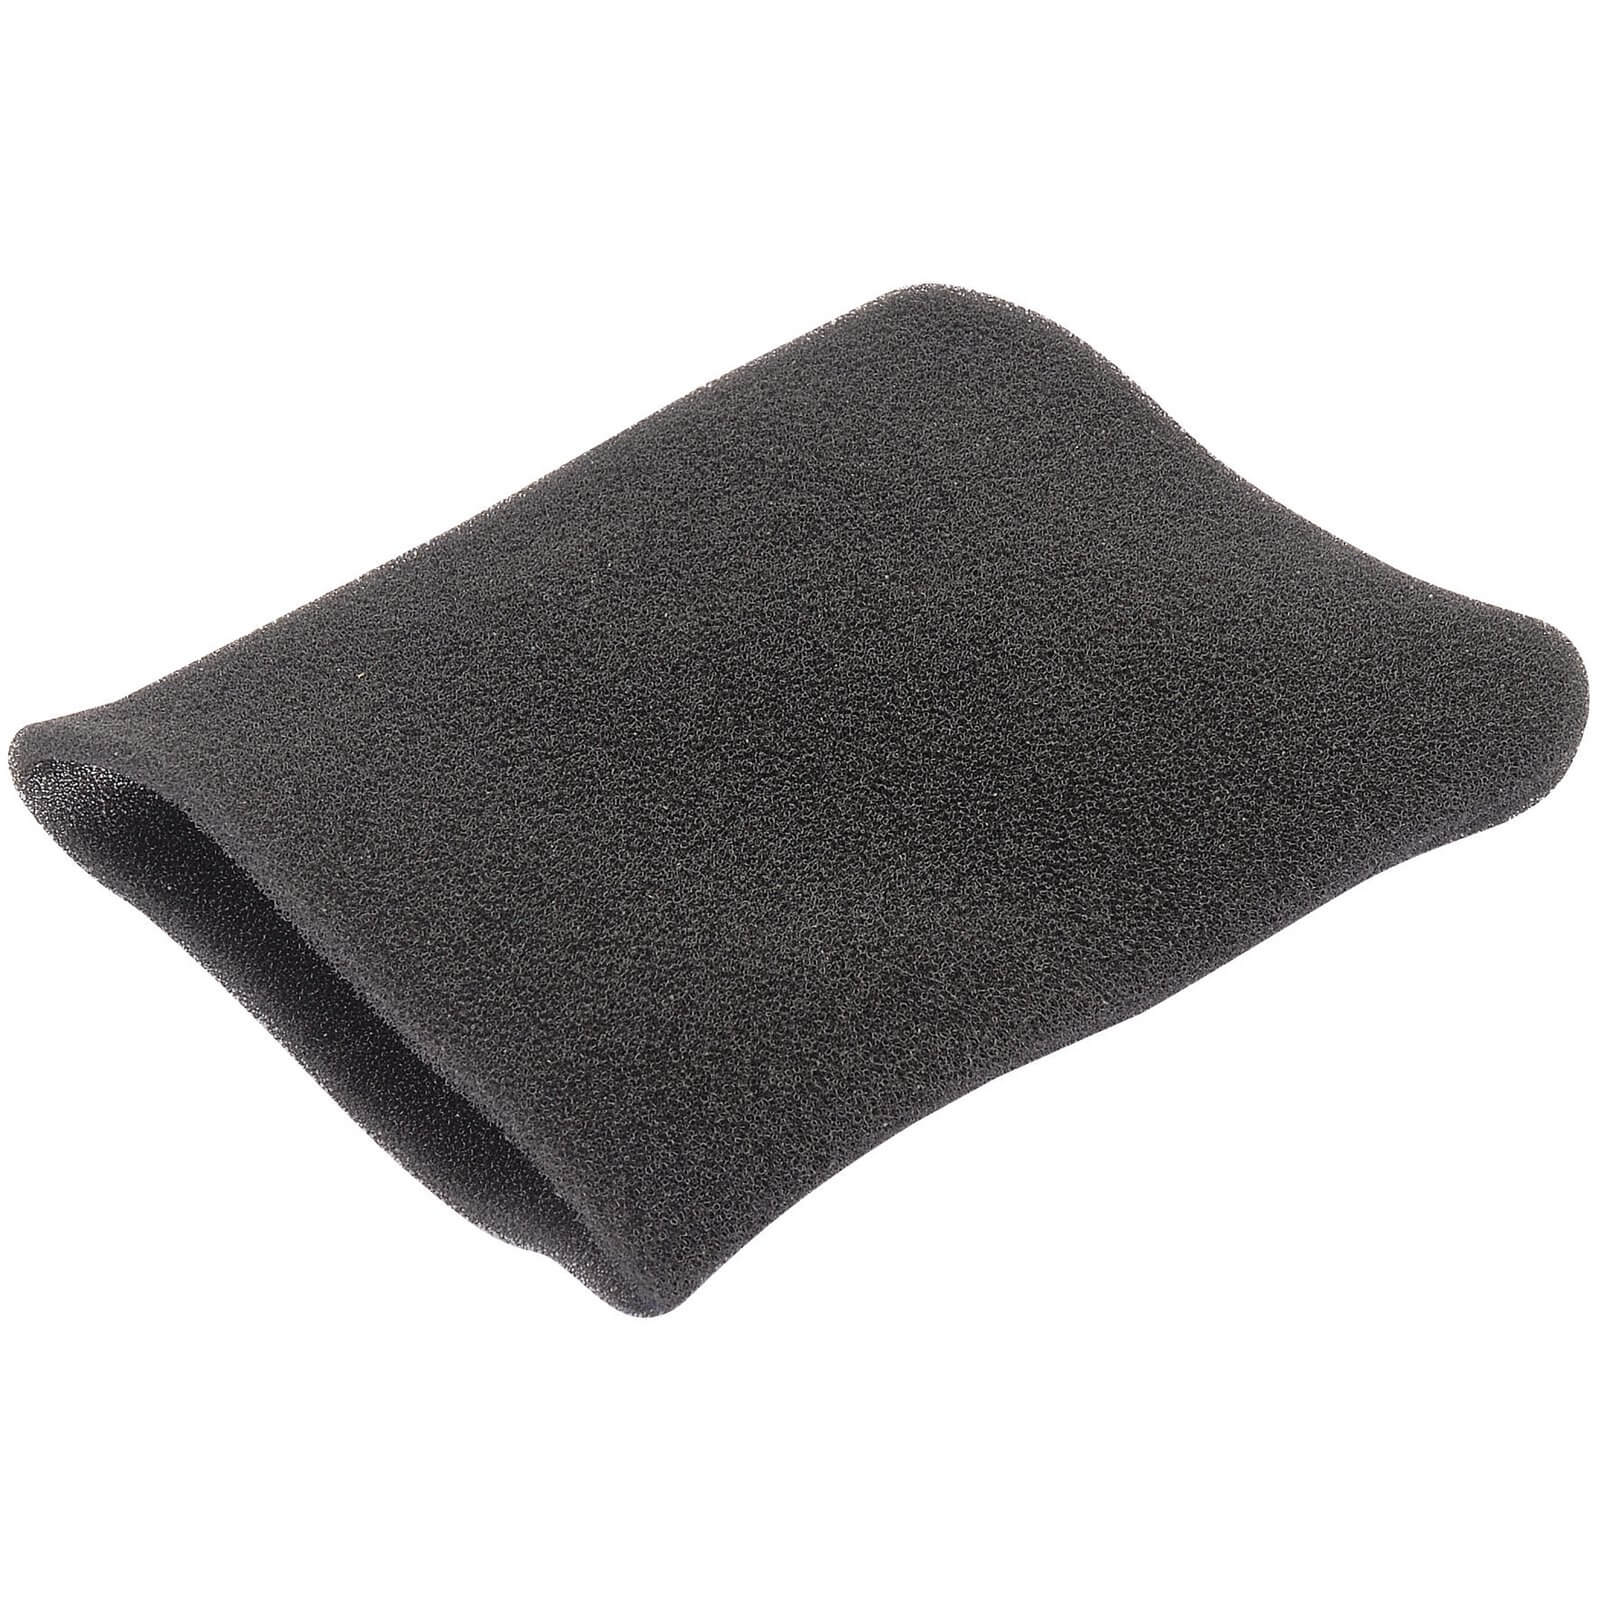 Draper Anti Foam Filter for WDV10 Vacuum Cleaners